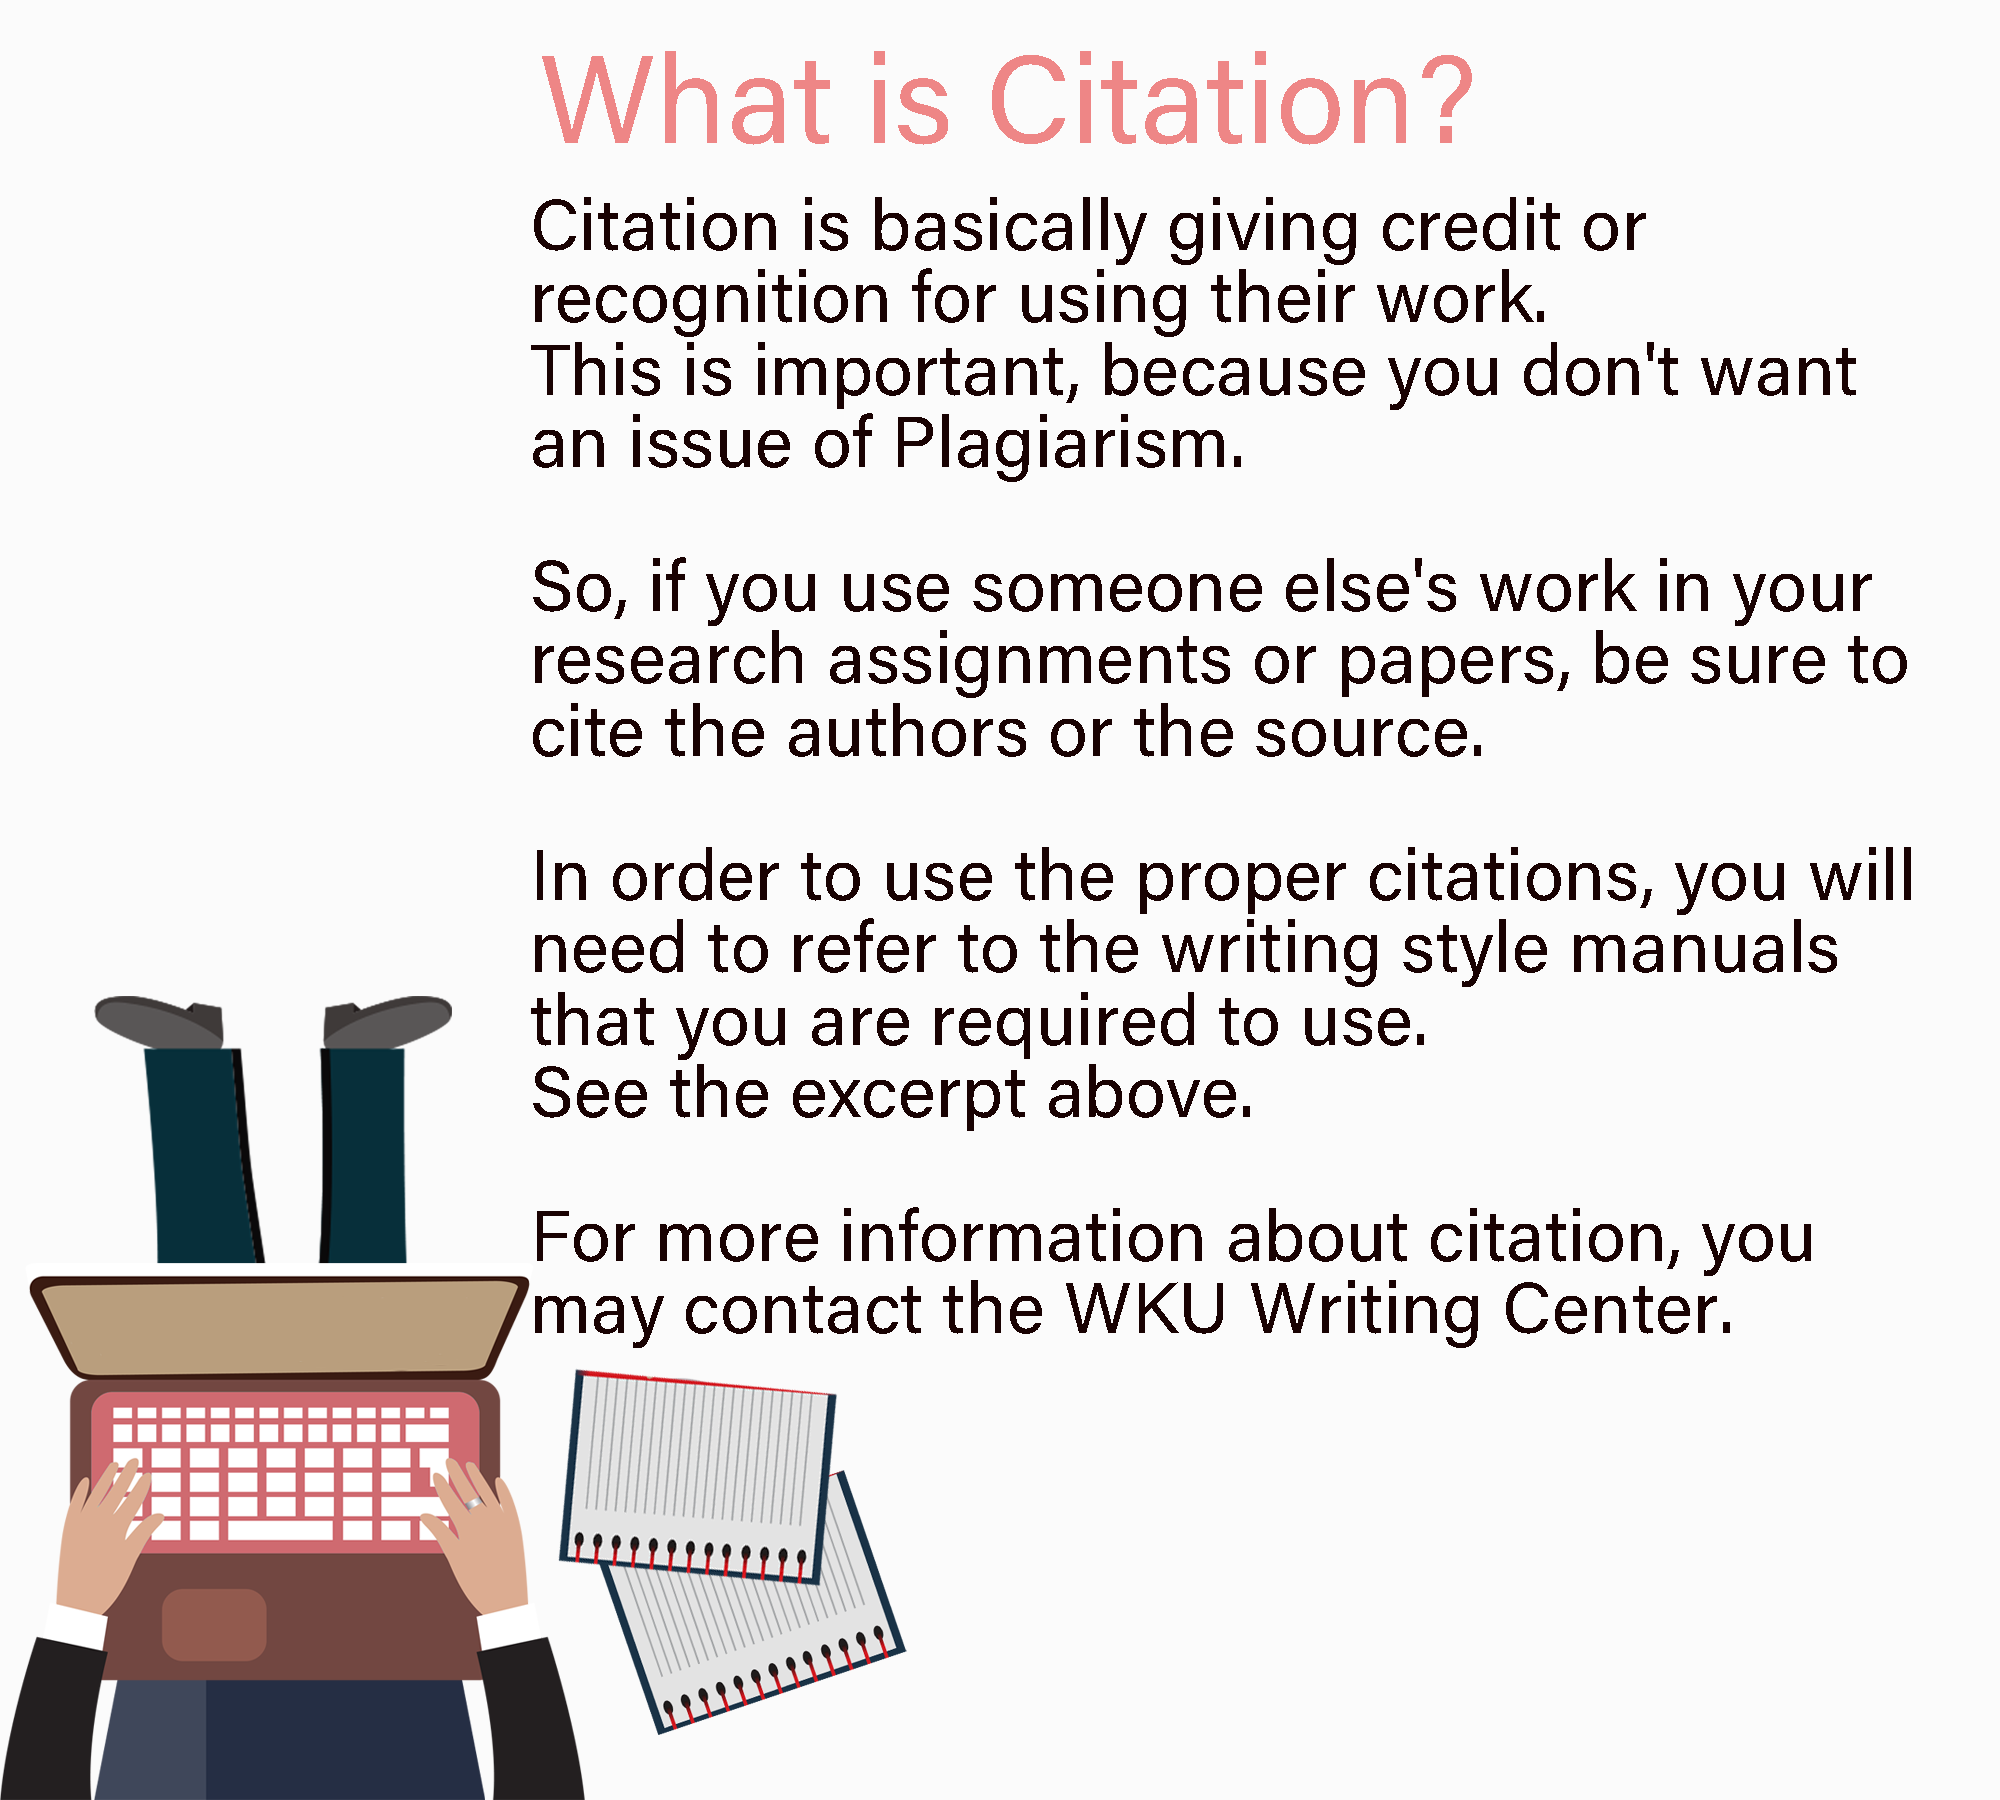 Infographic image explaining citation and how it is used. Text only transcript of the infographic image is provided underneath the image.